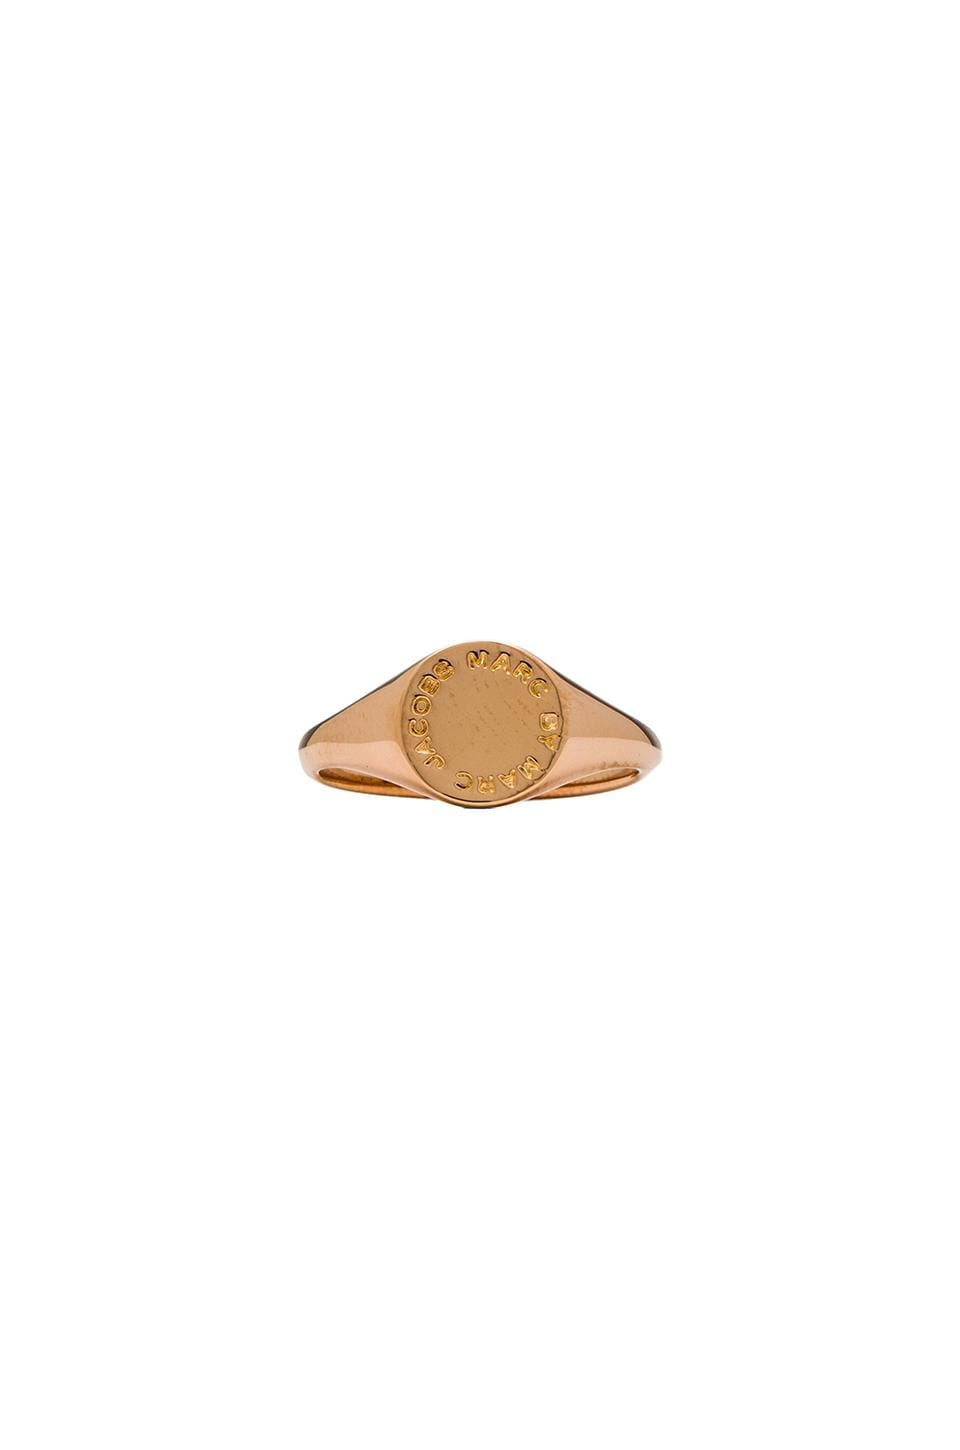 Marc by Marc Jacobs Grab & Go Logo Disc Signet Ring in Rose Gold